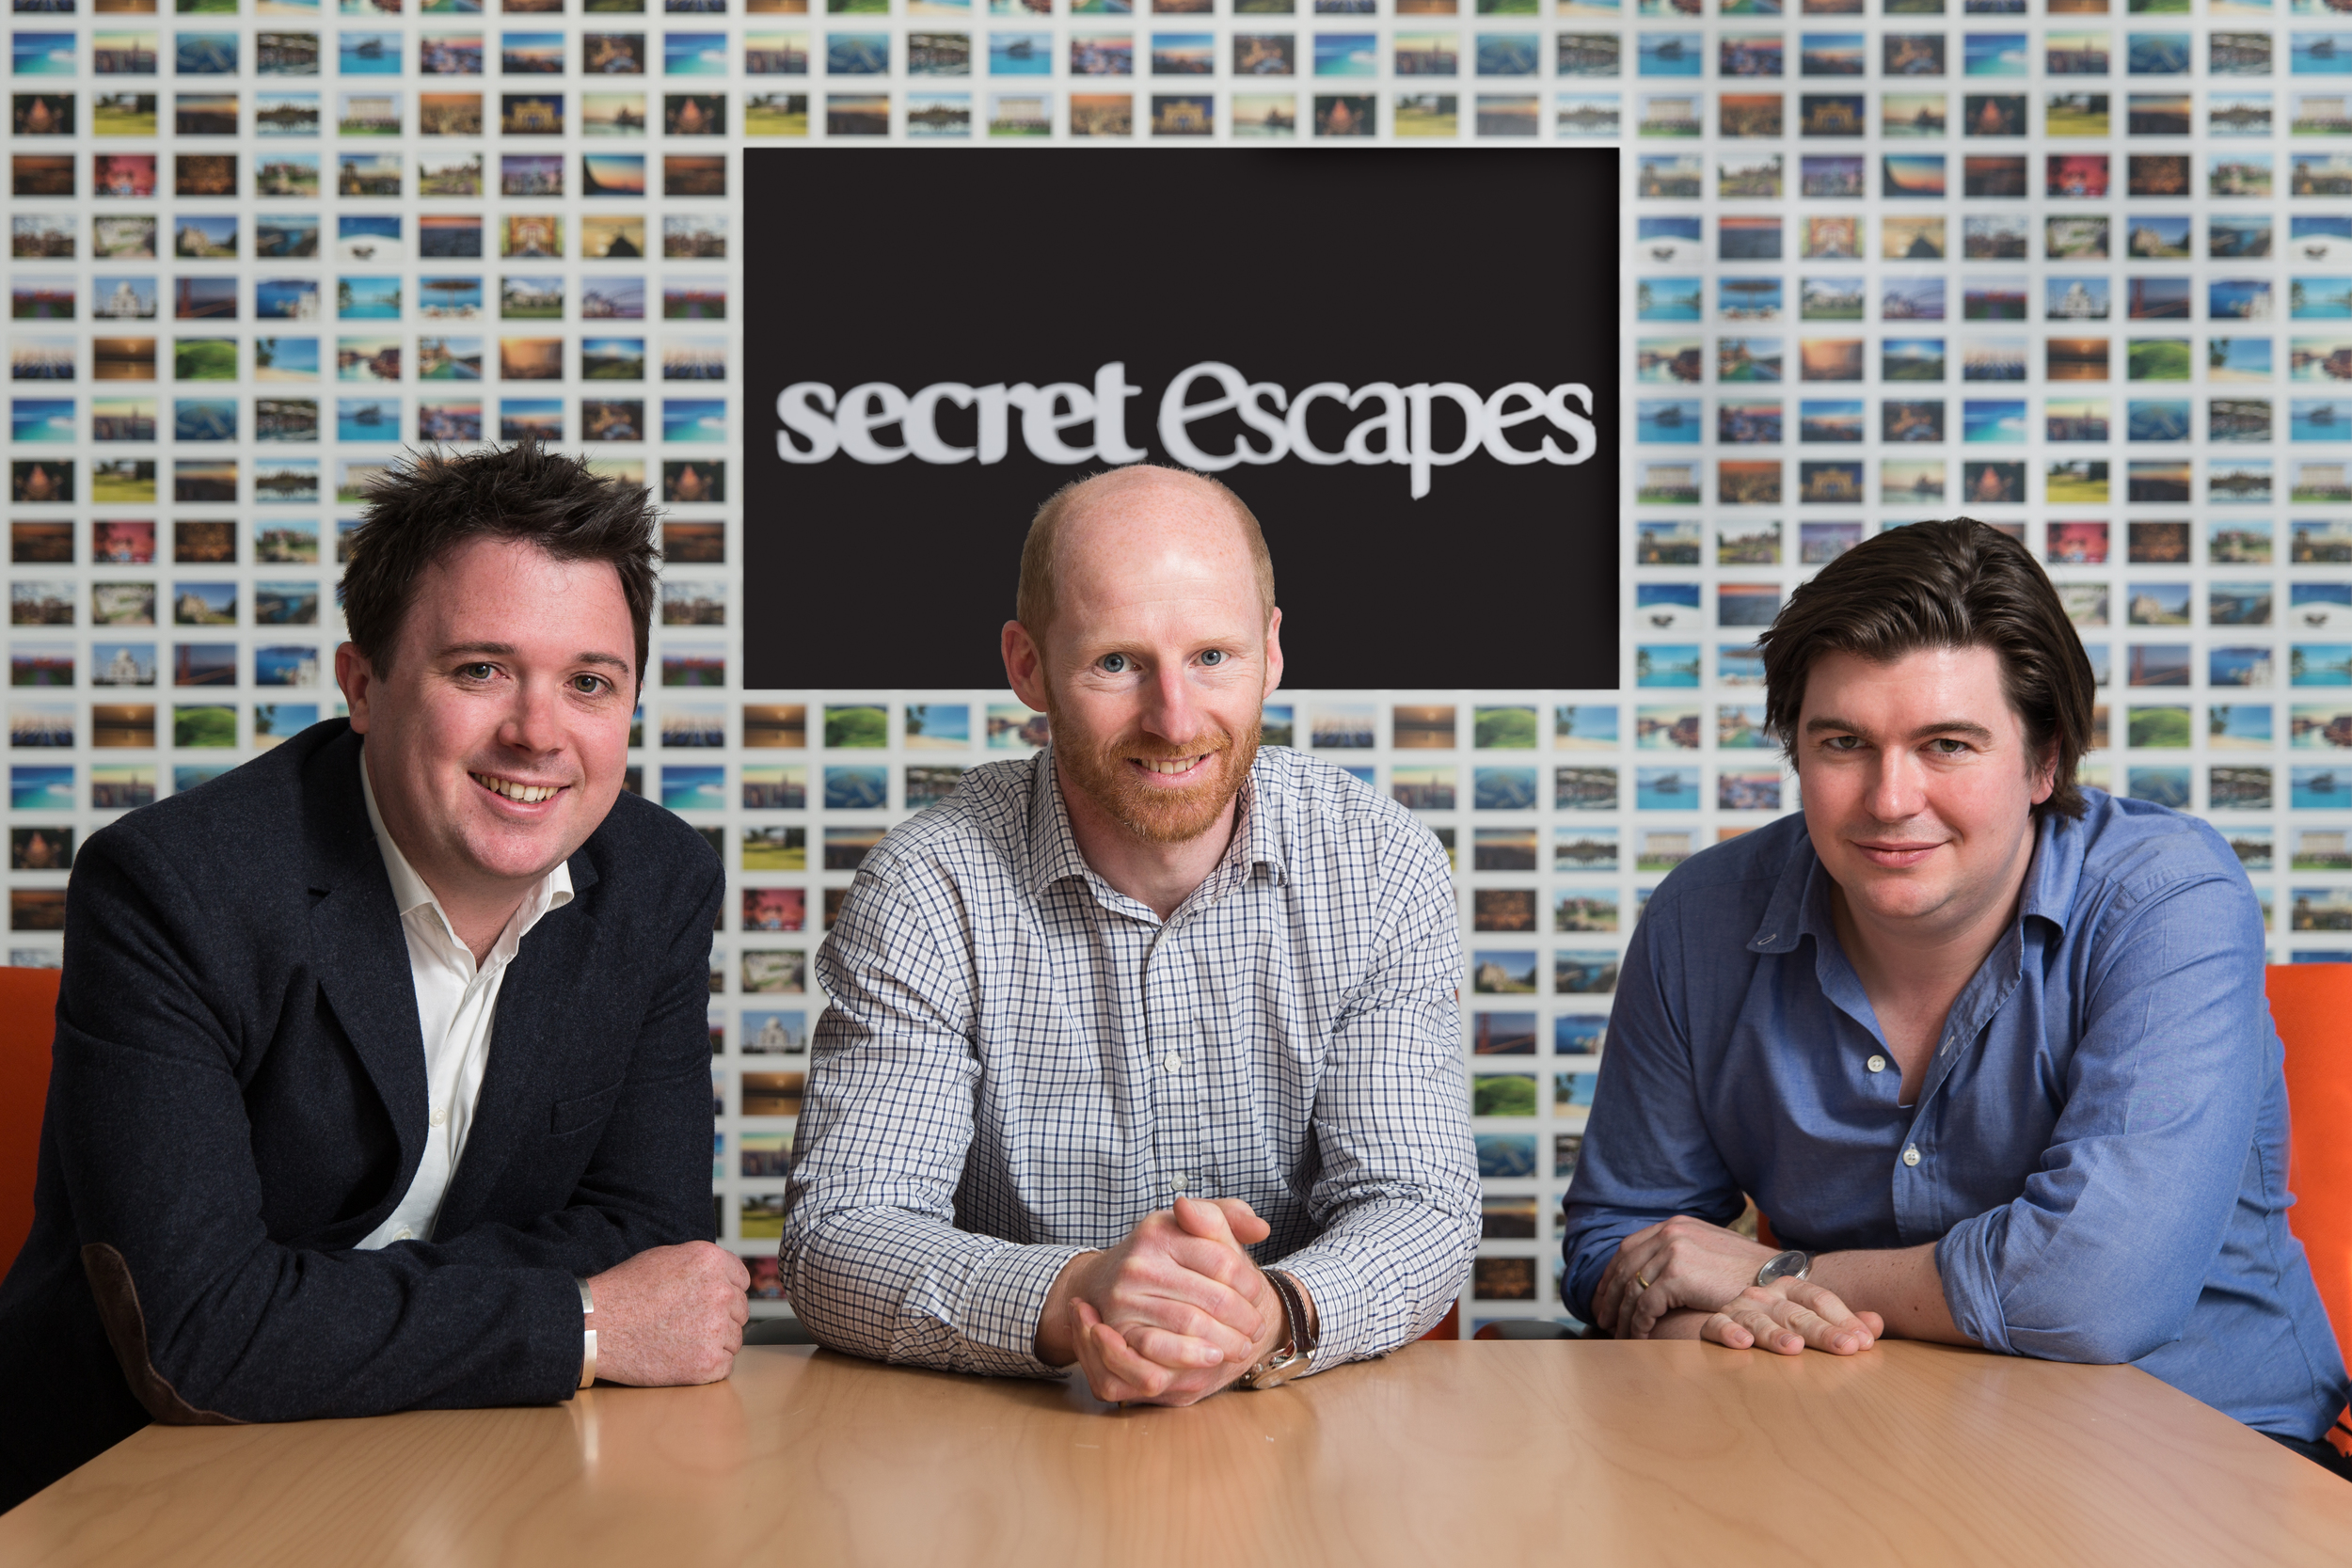 Secret Escapes-83-0441-Edit.jpg